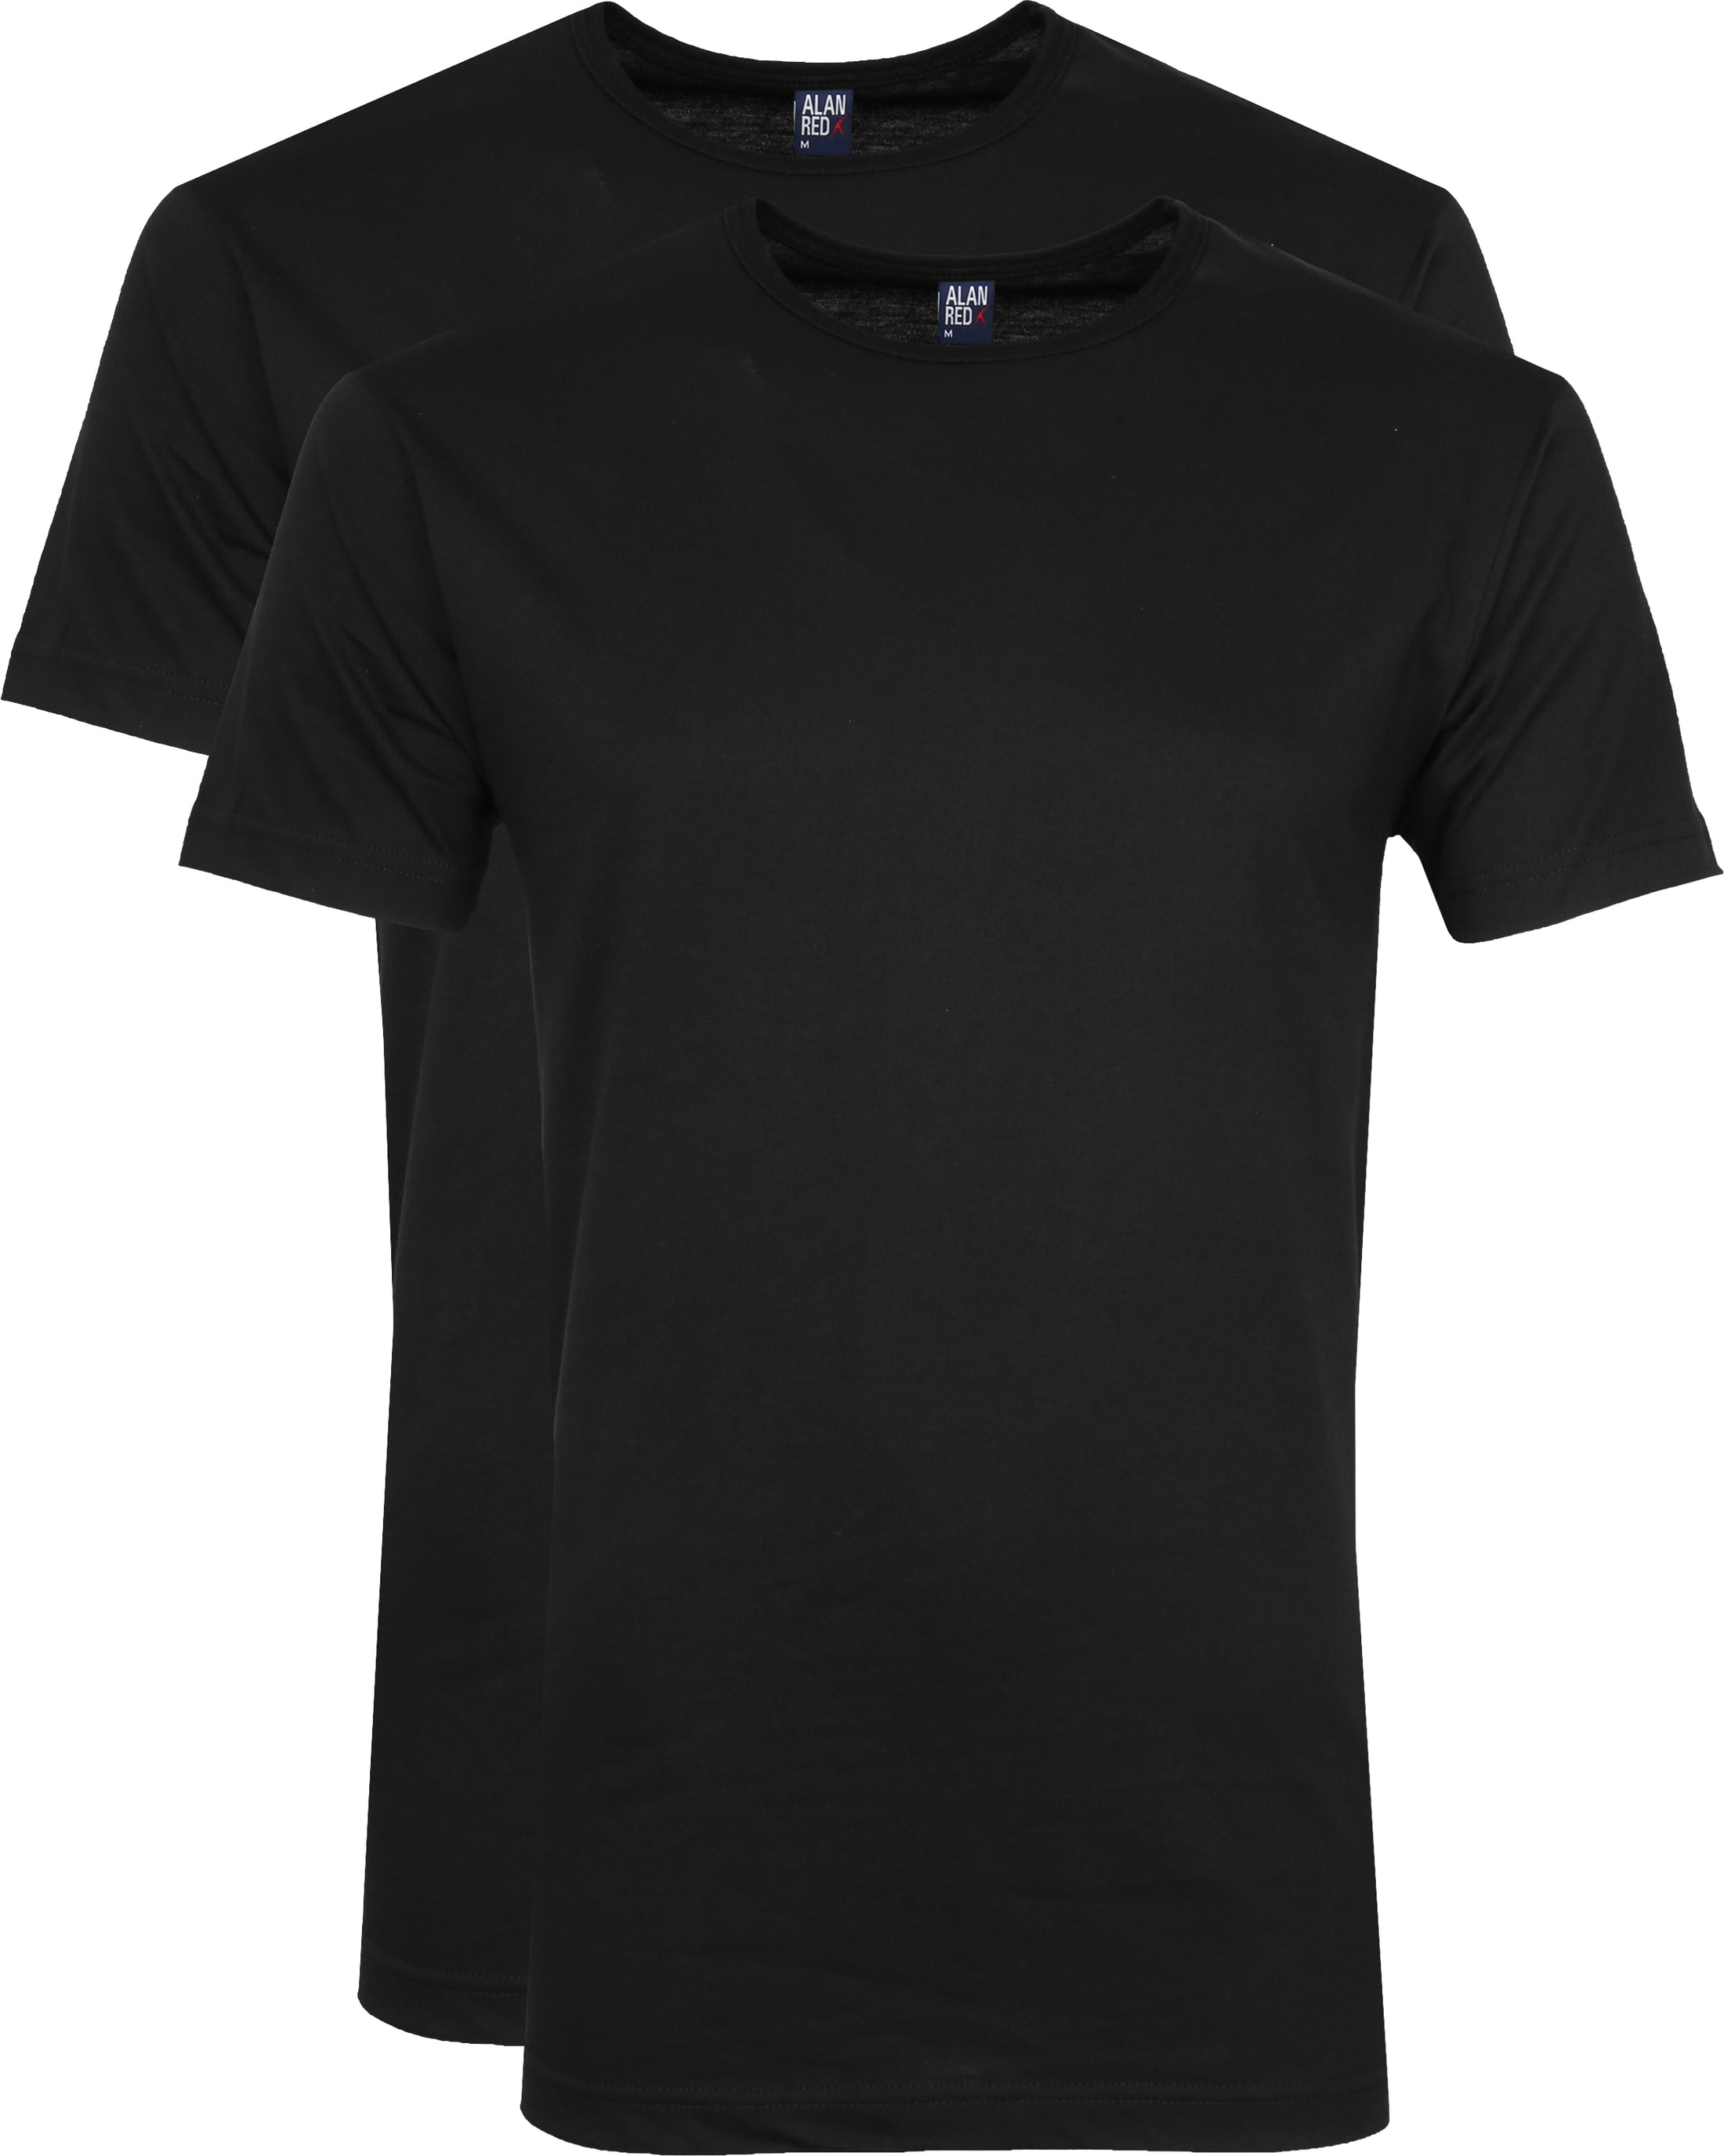 Alan Red Derby O-Neck T-Shirt Black (2Pack) foto 0